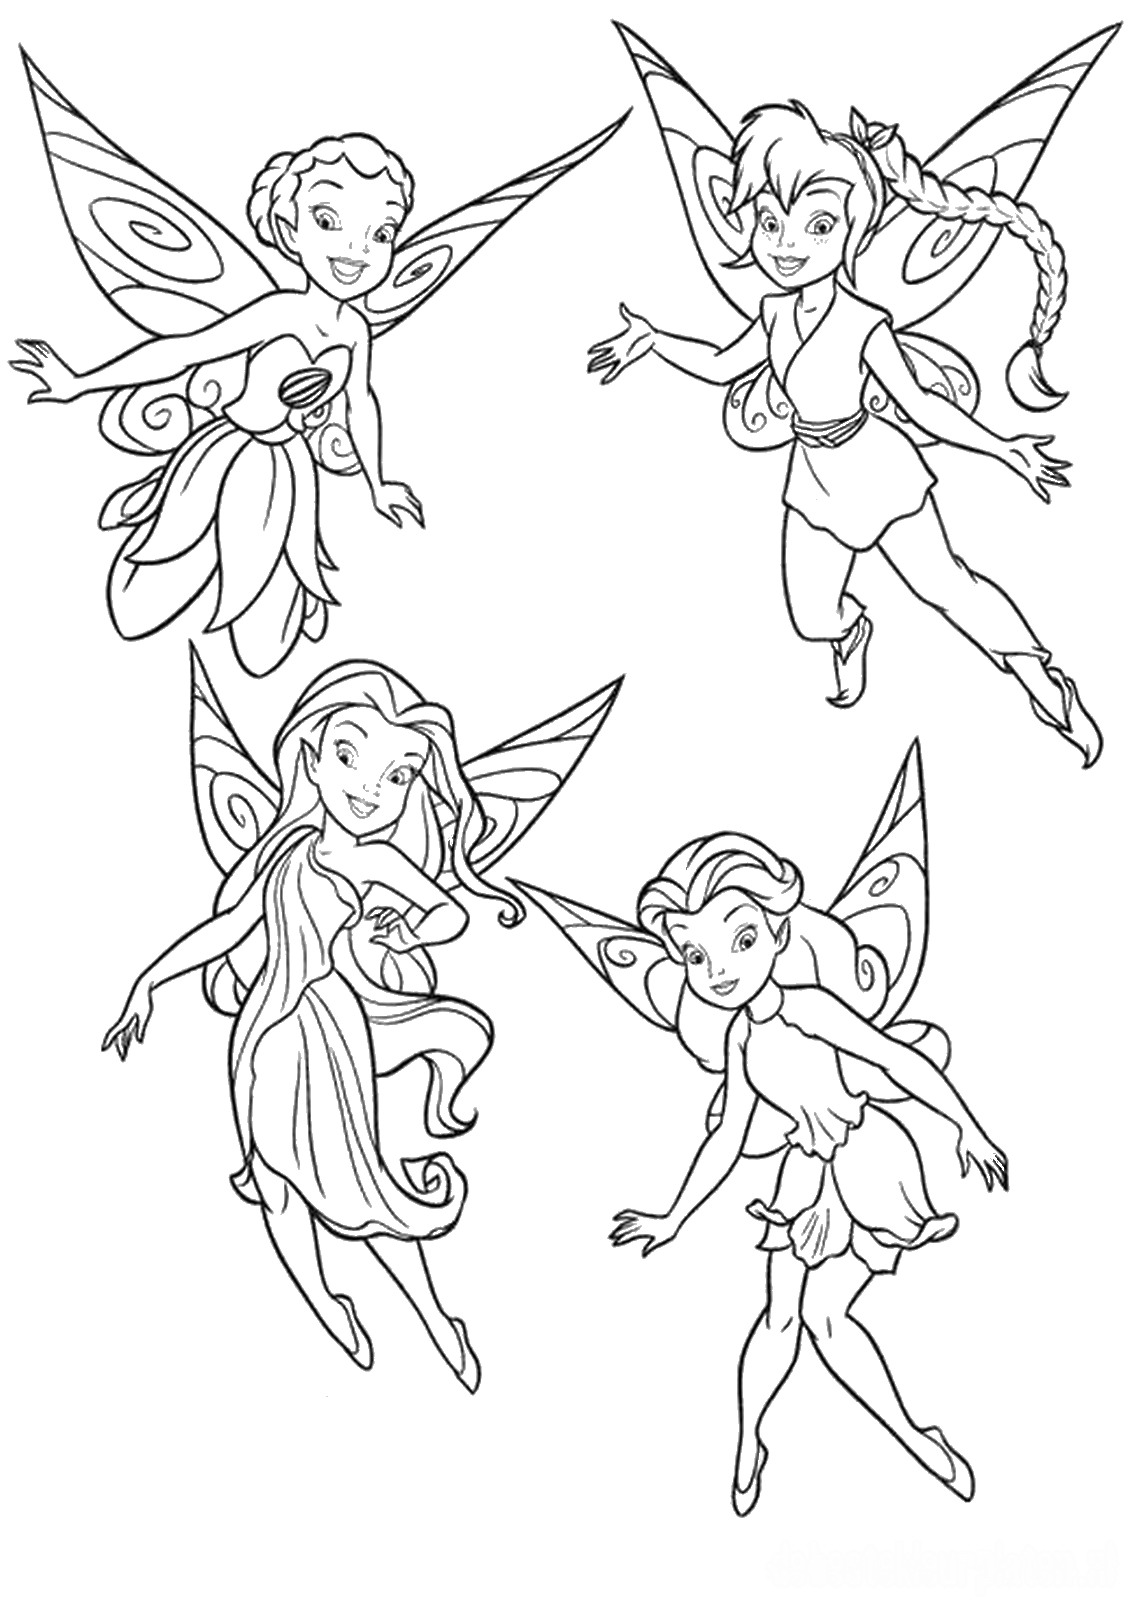 tinker bell coloring pages fawn animal talent fairy tinkerbell coloring pages legend tinker bell pages coloring